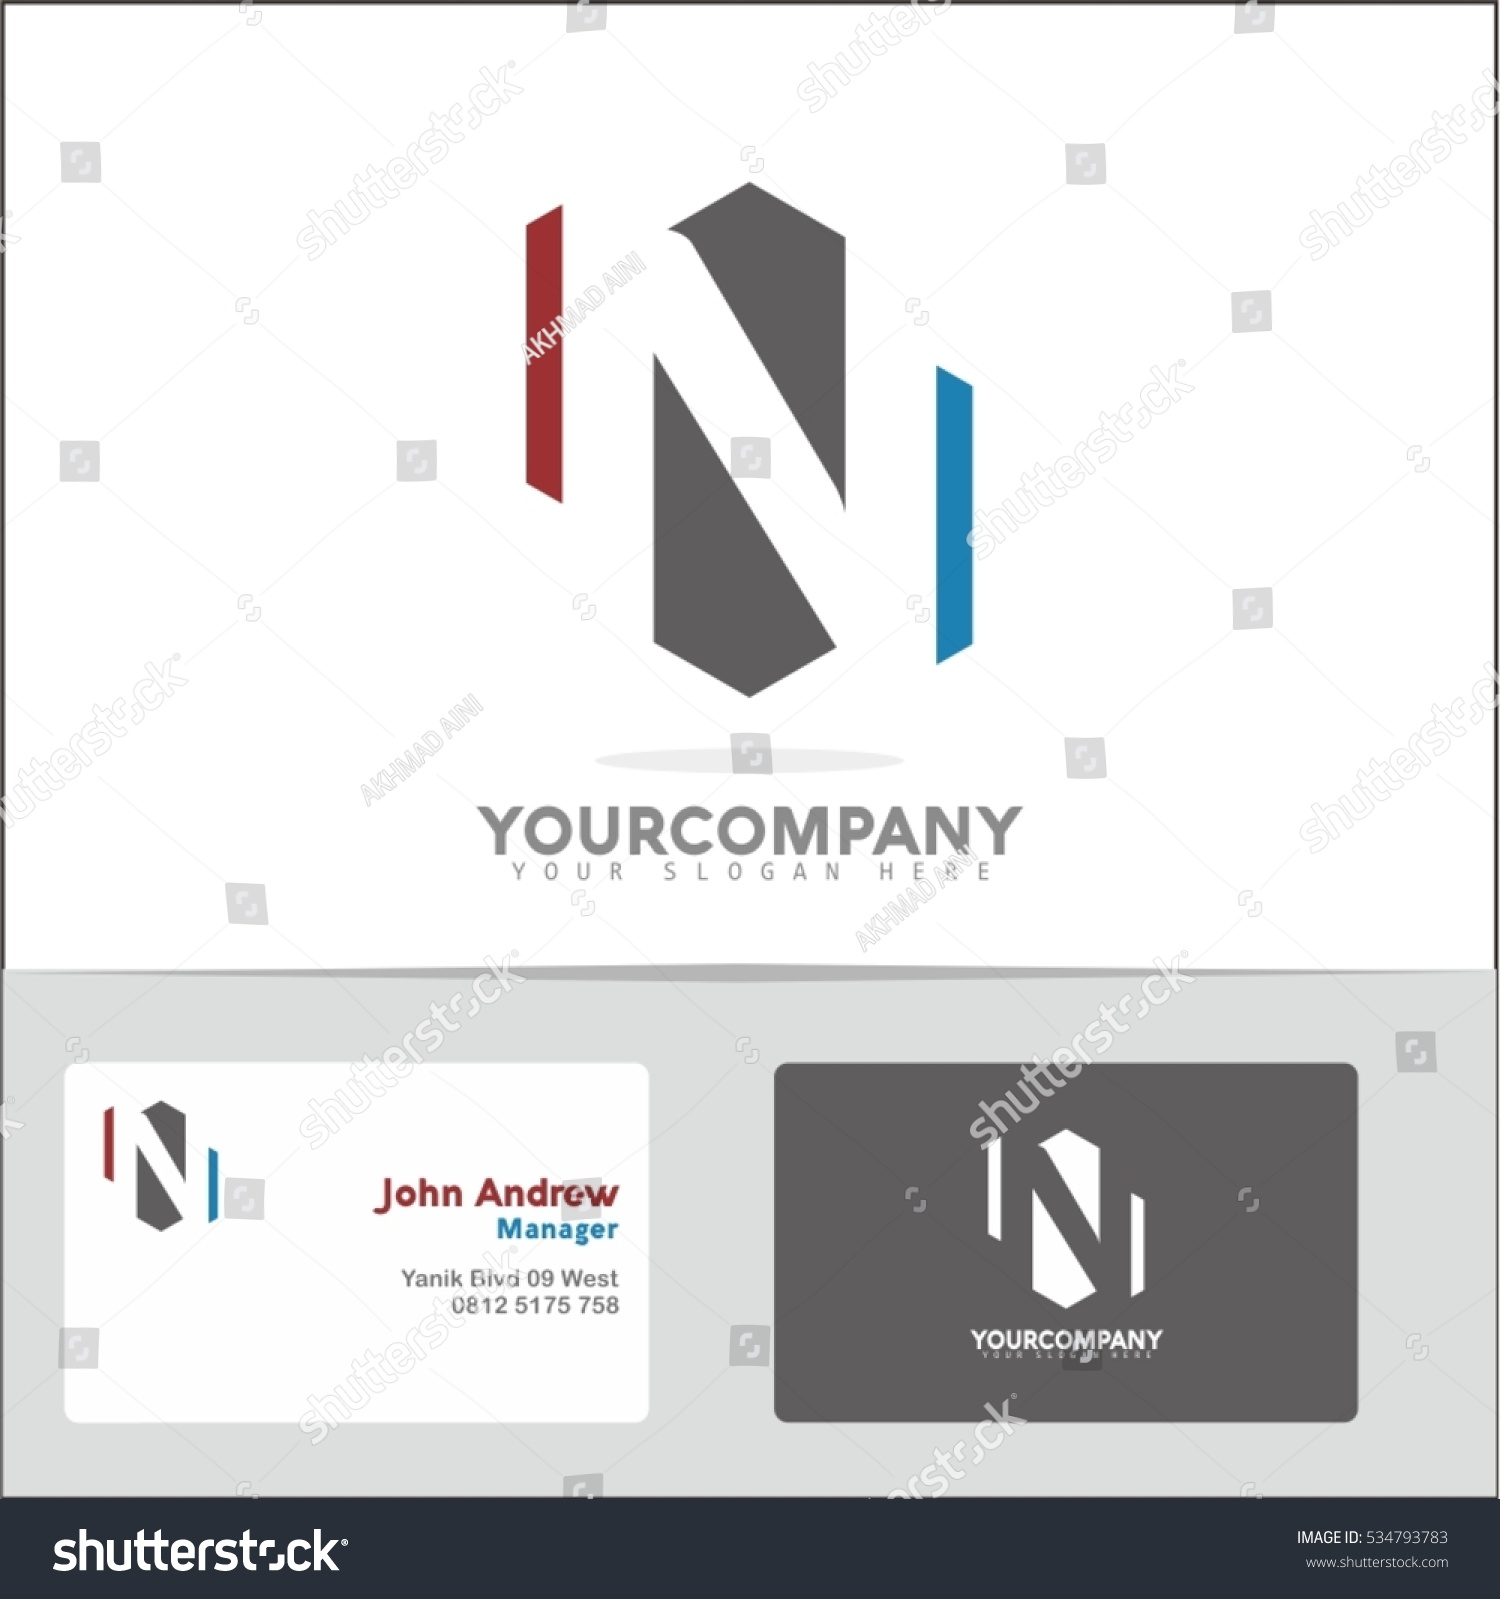 Fresh Gallery Of Business Cards Henderson Nv – Bussiness Cards ...